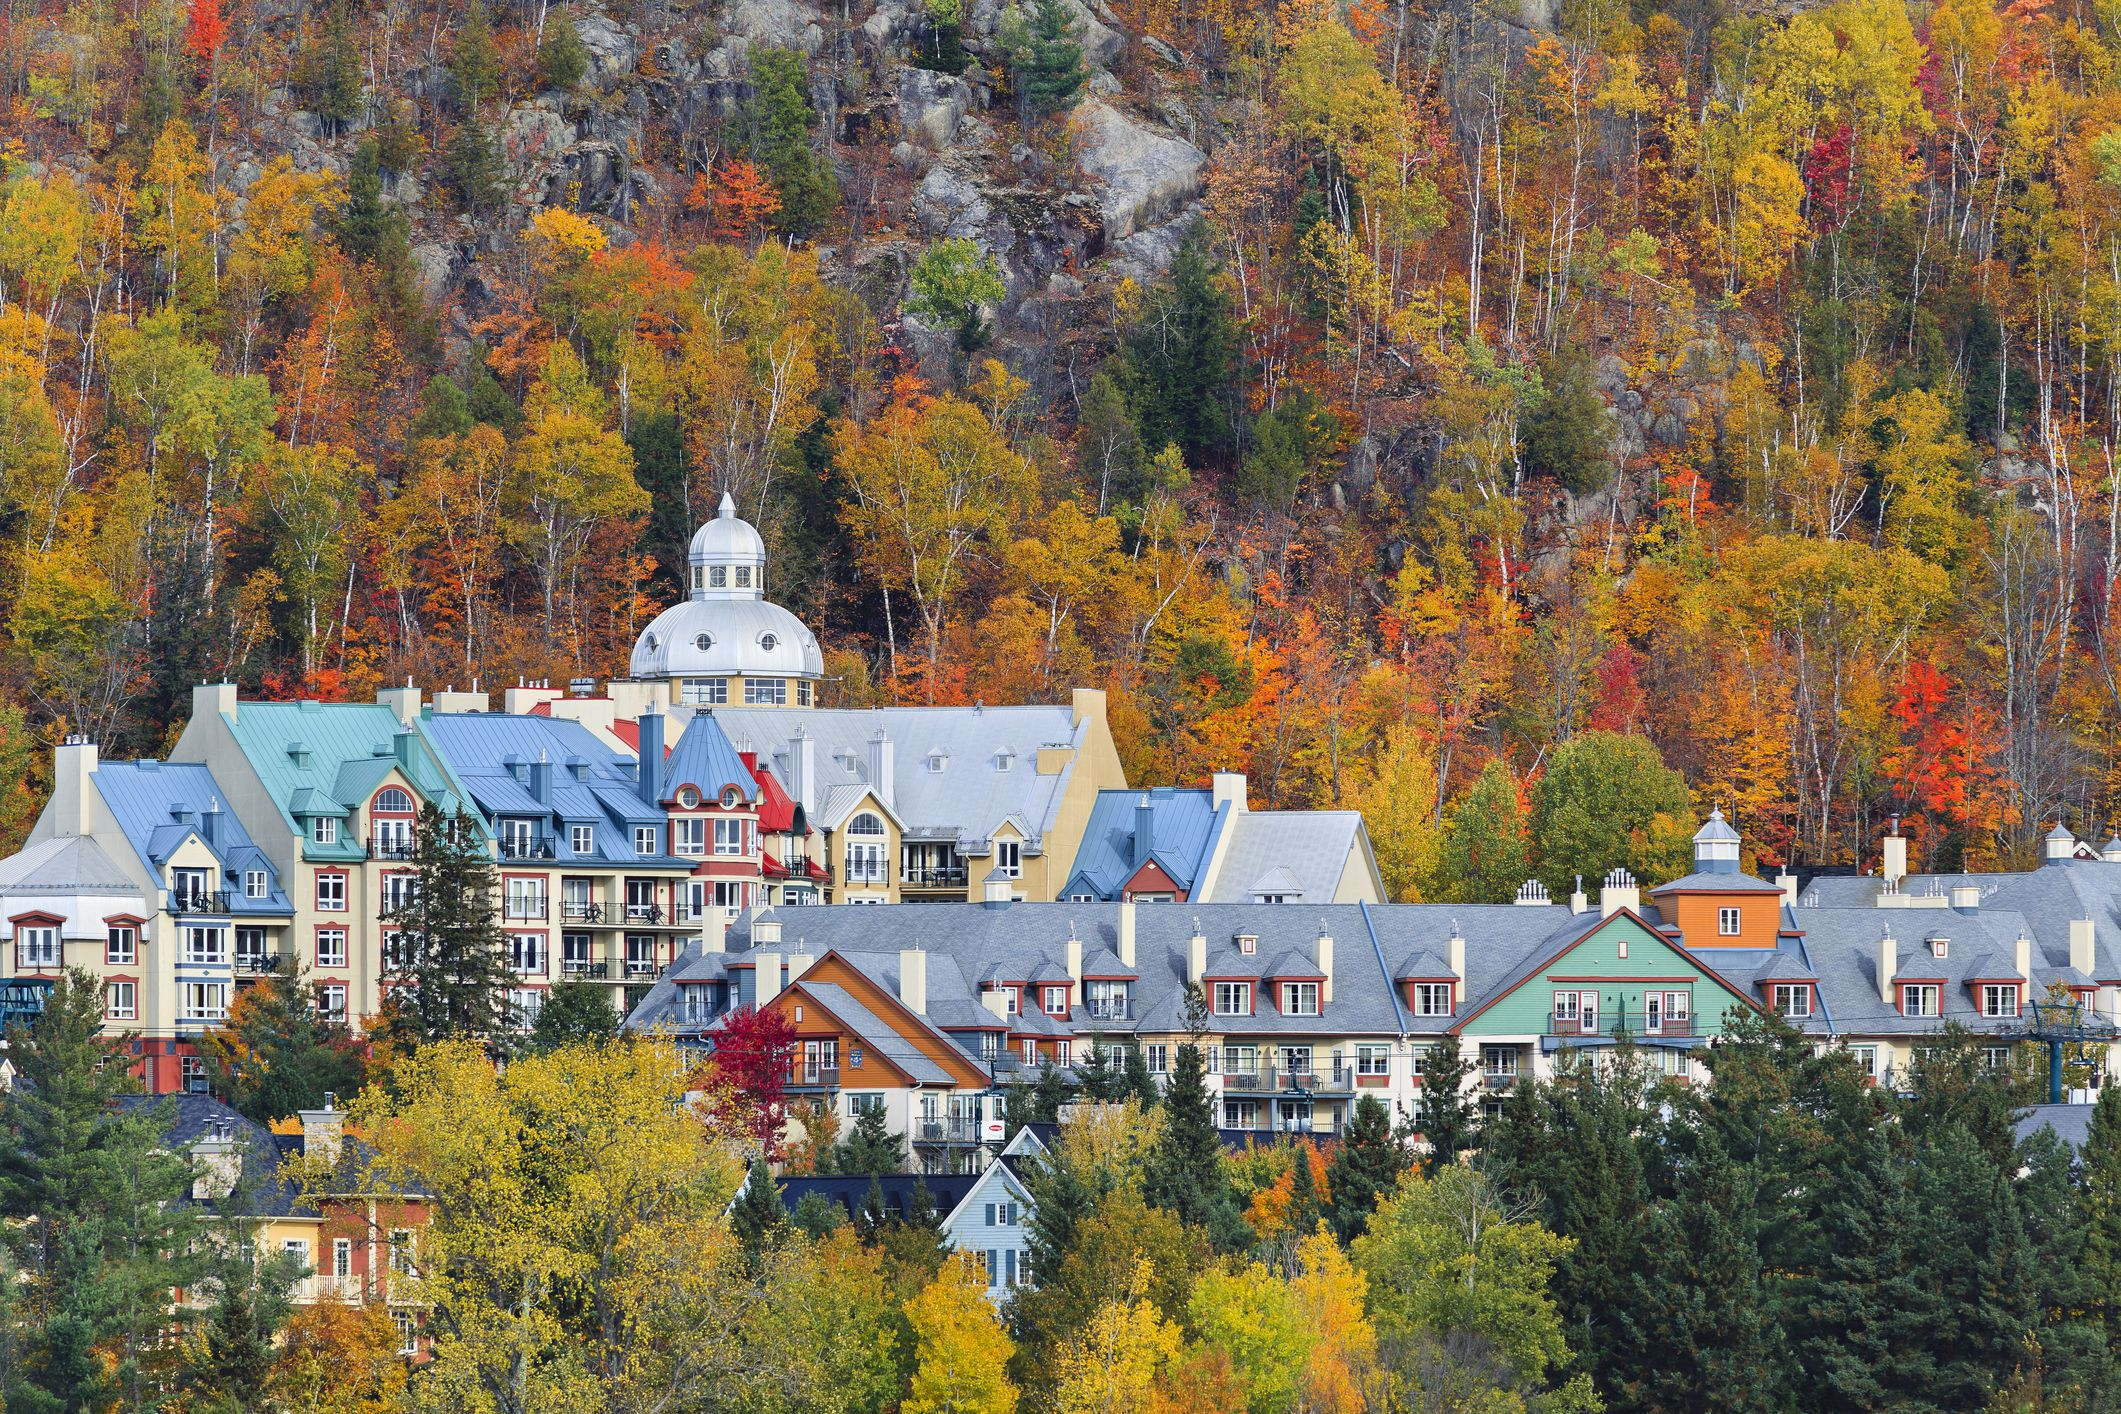 Mont Tremblant Village, a small village with blue, red, and green roofs set in a dense forest of trees in shades of orange, red, gold, yellow, and green